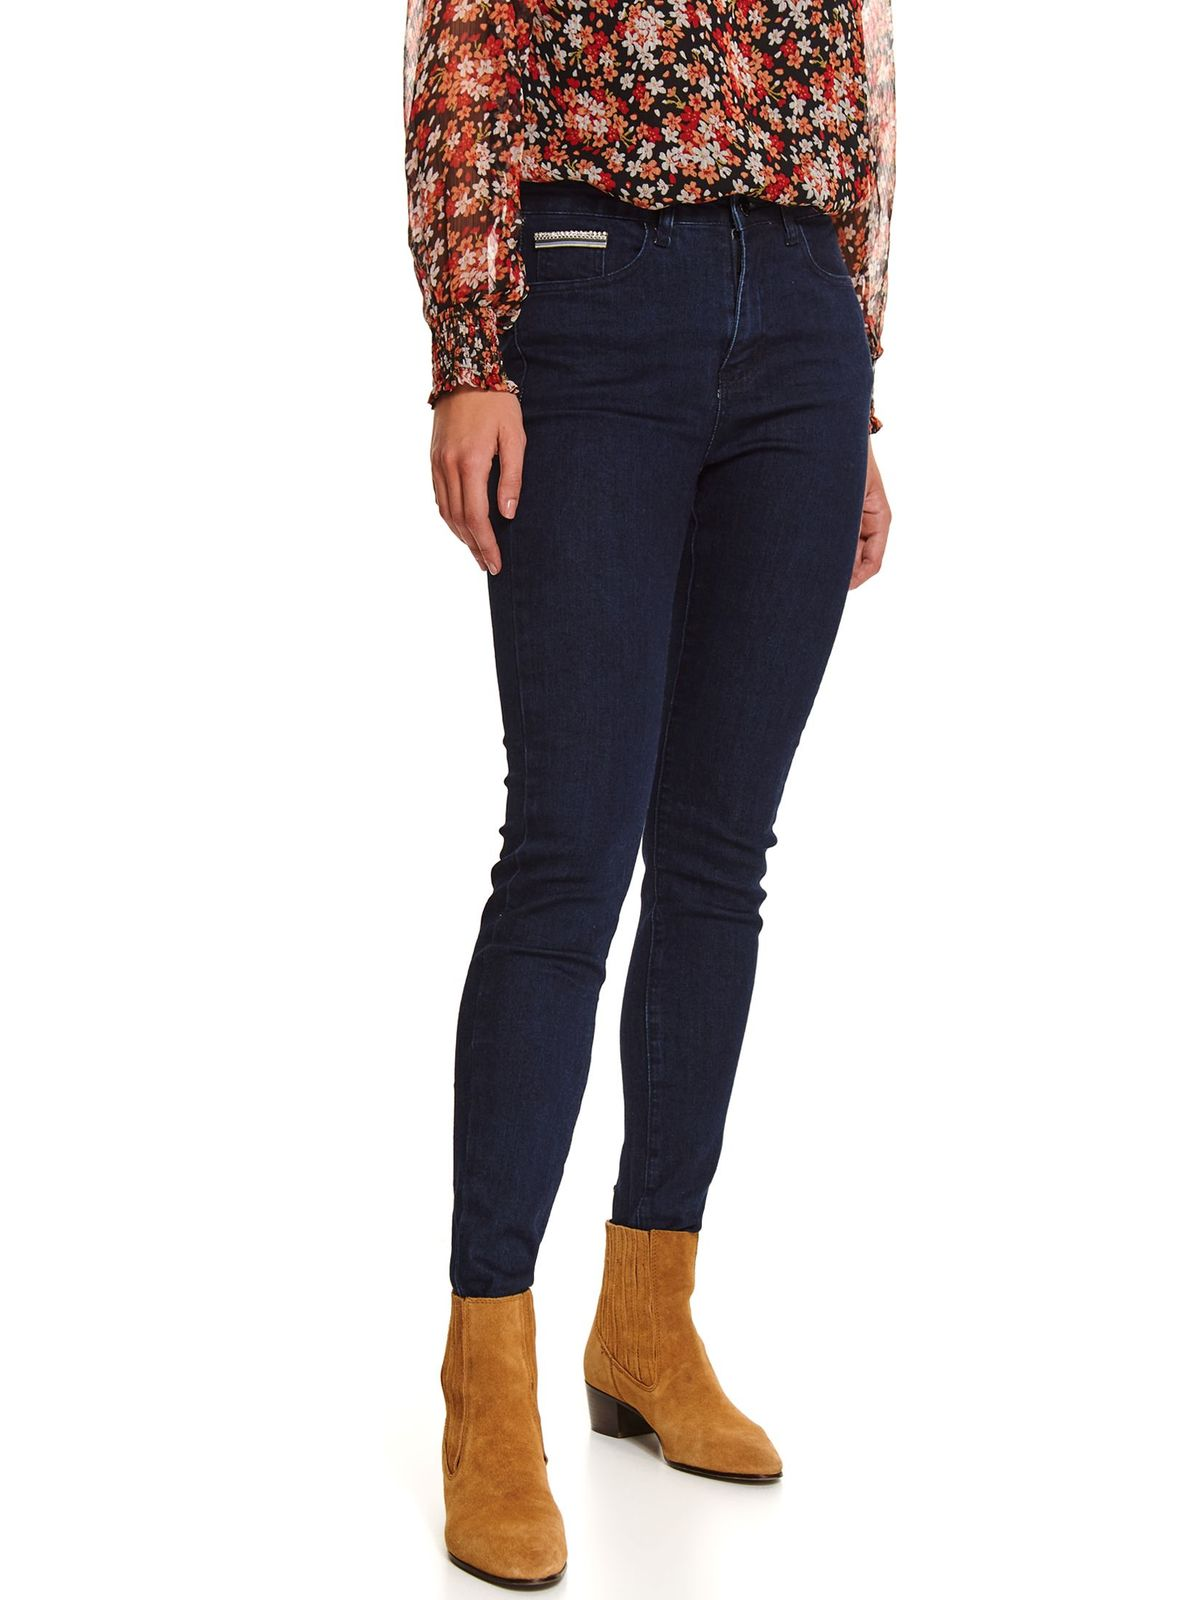 Blue trousers casual skinny jeans denim with medium waist